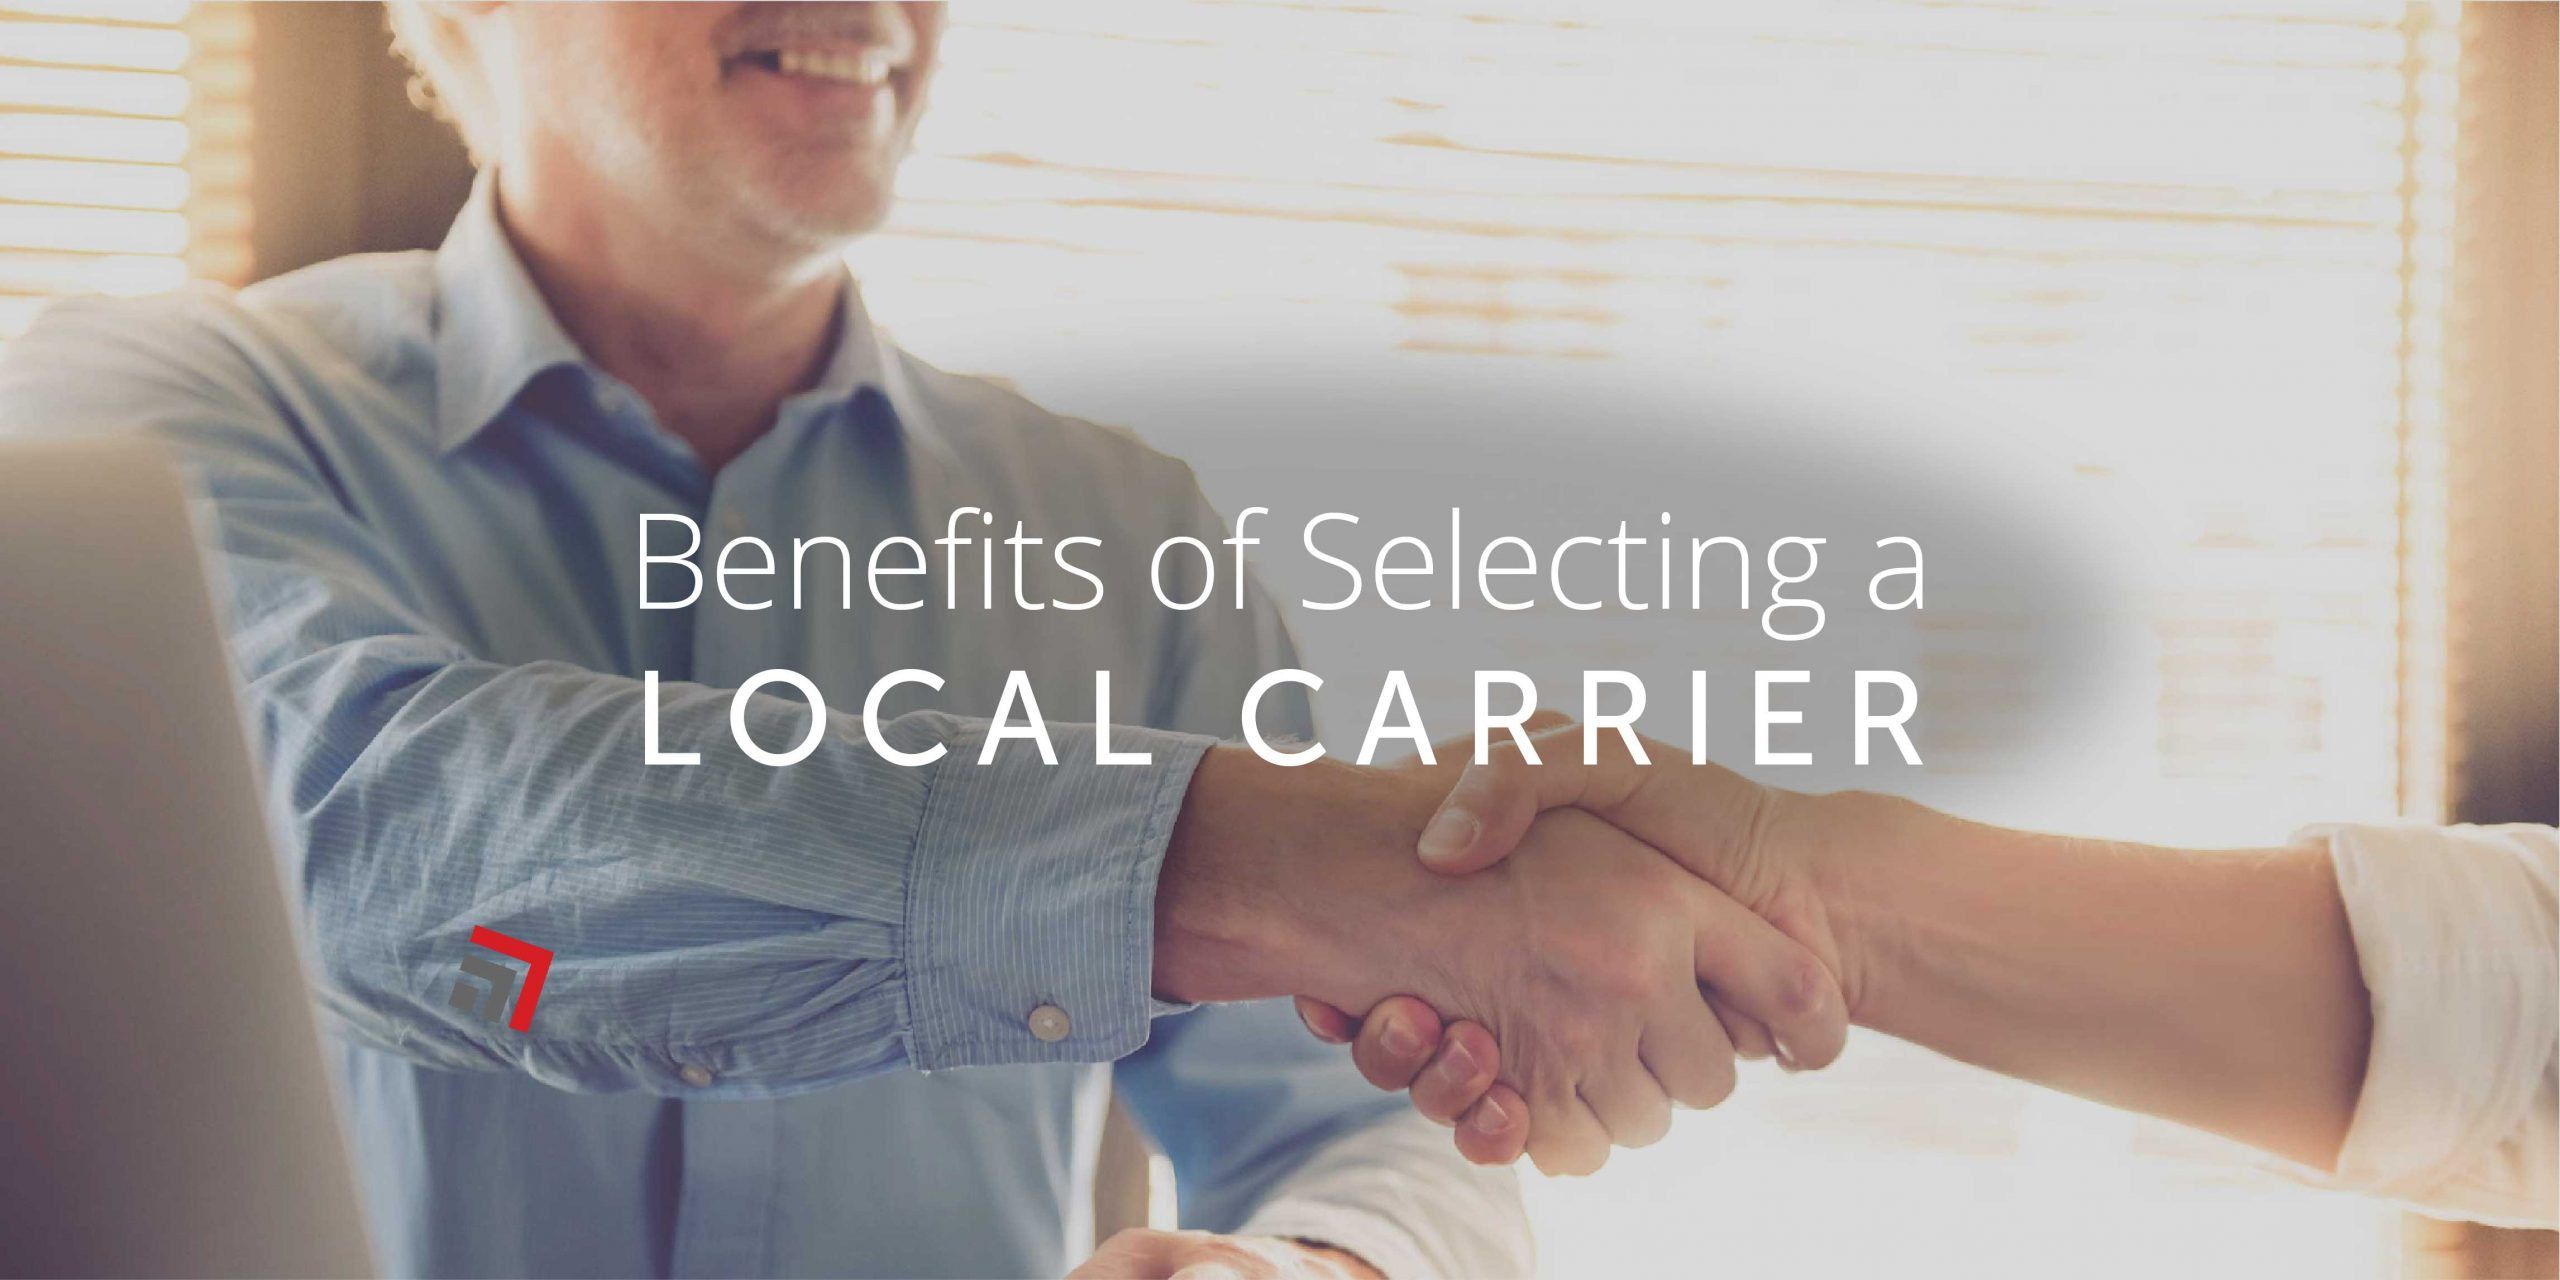 Benefits of Selecting a Local Carrier